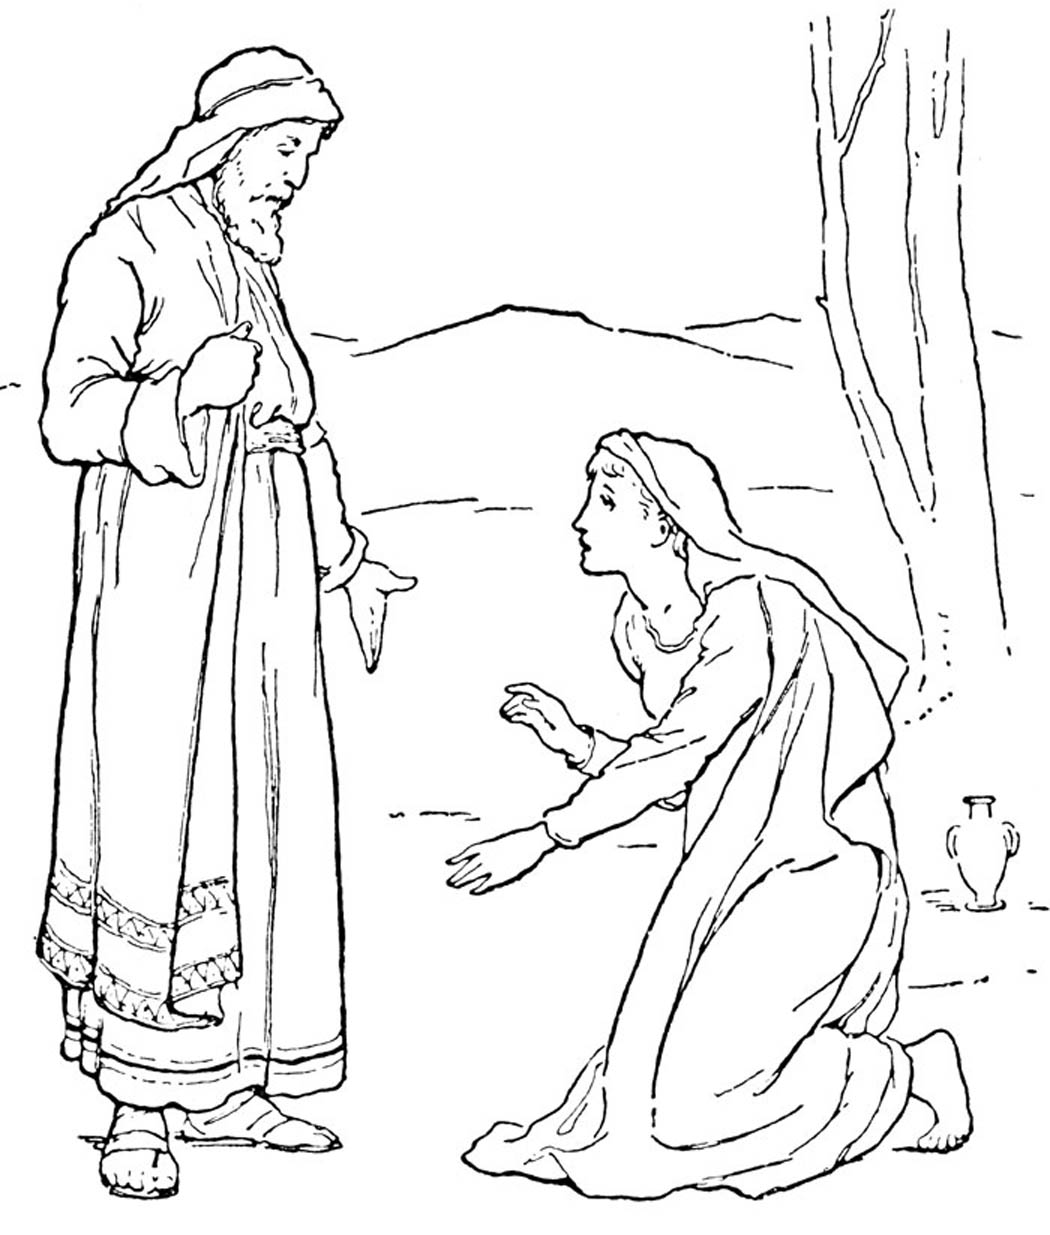 bible coloring pages for preschoolers reading the bible daily bible coloring pages preschool preschoolers for bible pages coloring